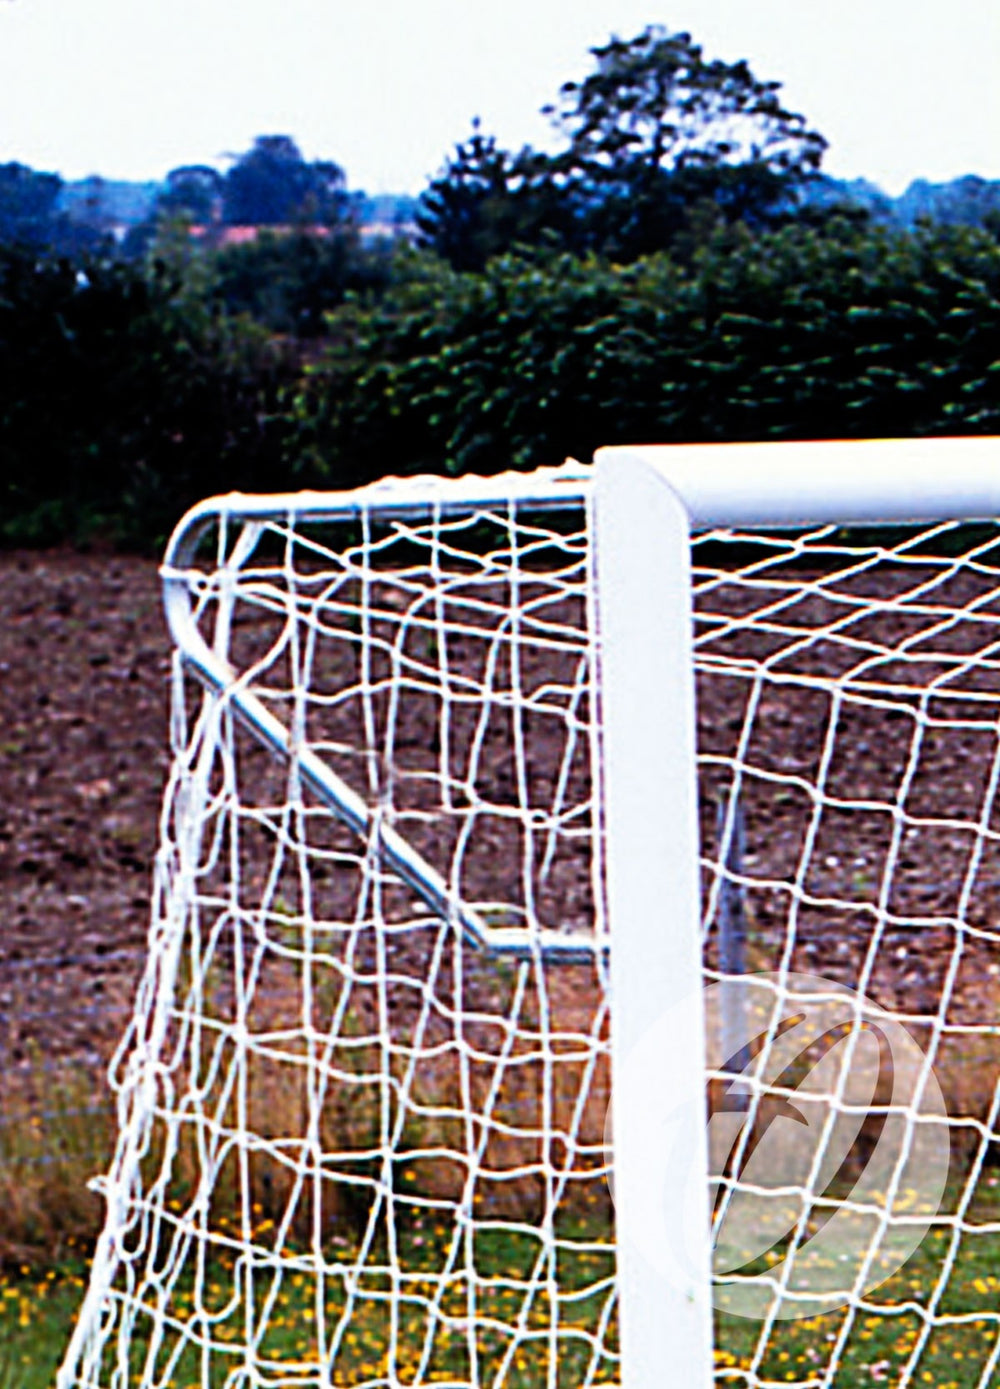 Elbow Net Support For 3G Stadium Club Goal